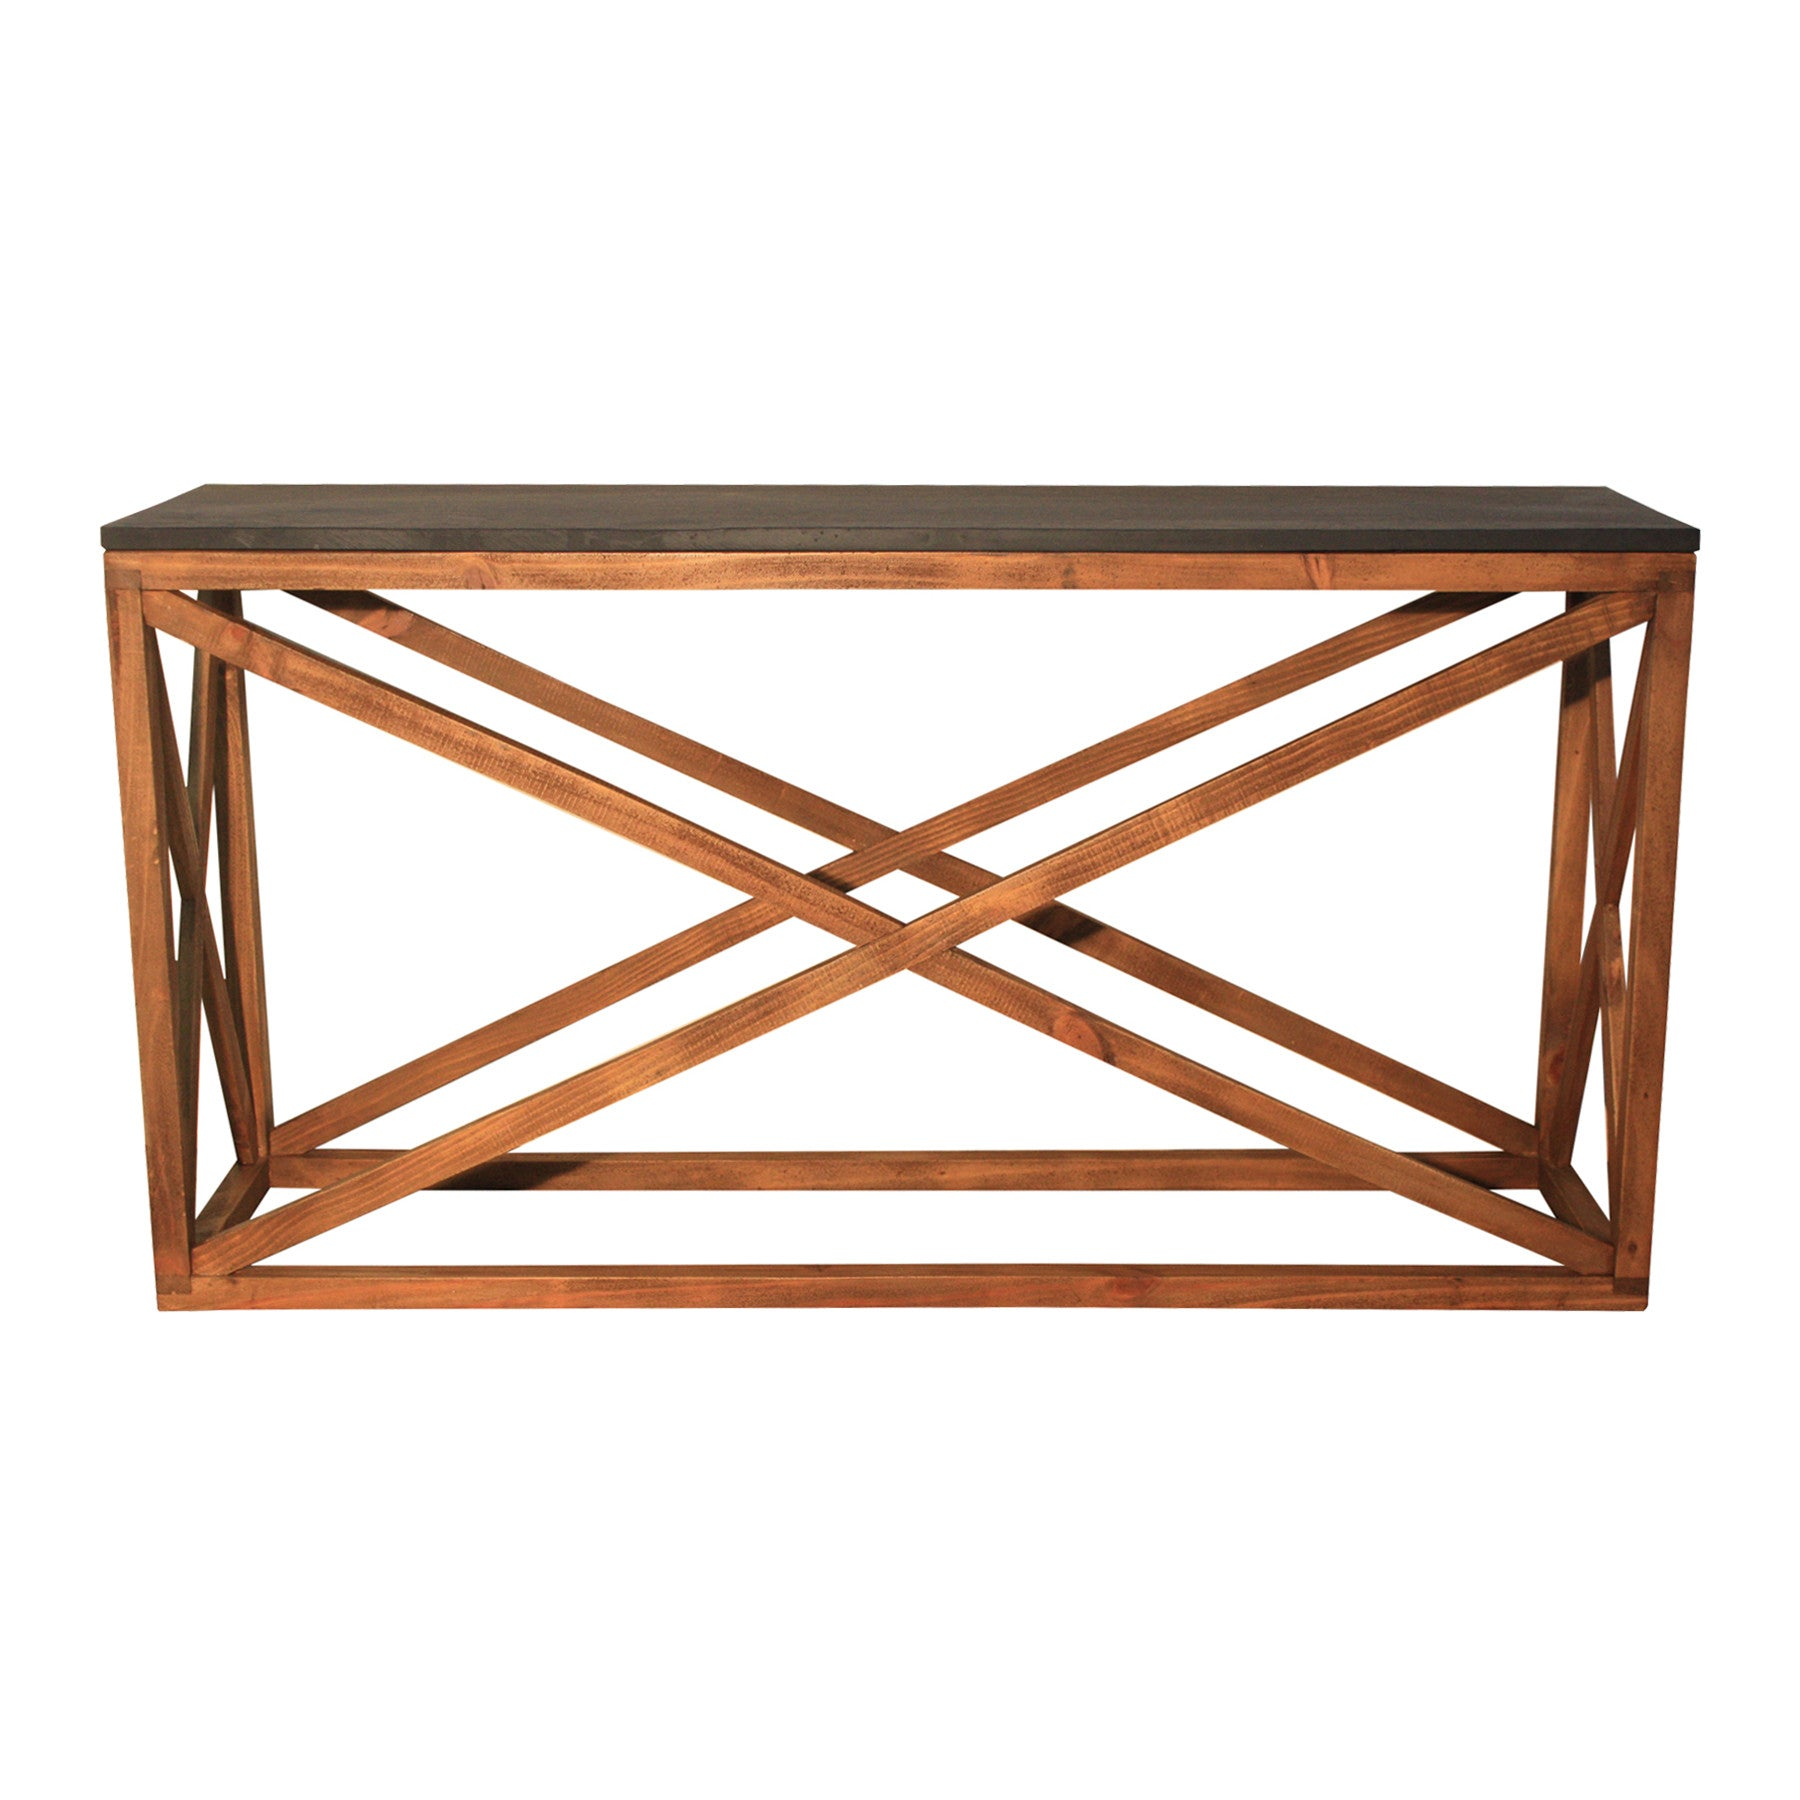 Stone top console table san luis obispo furniture store stone top console table geotapseo Gallery